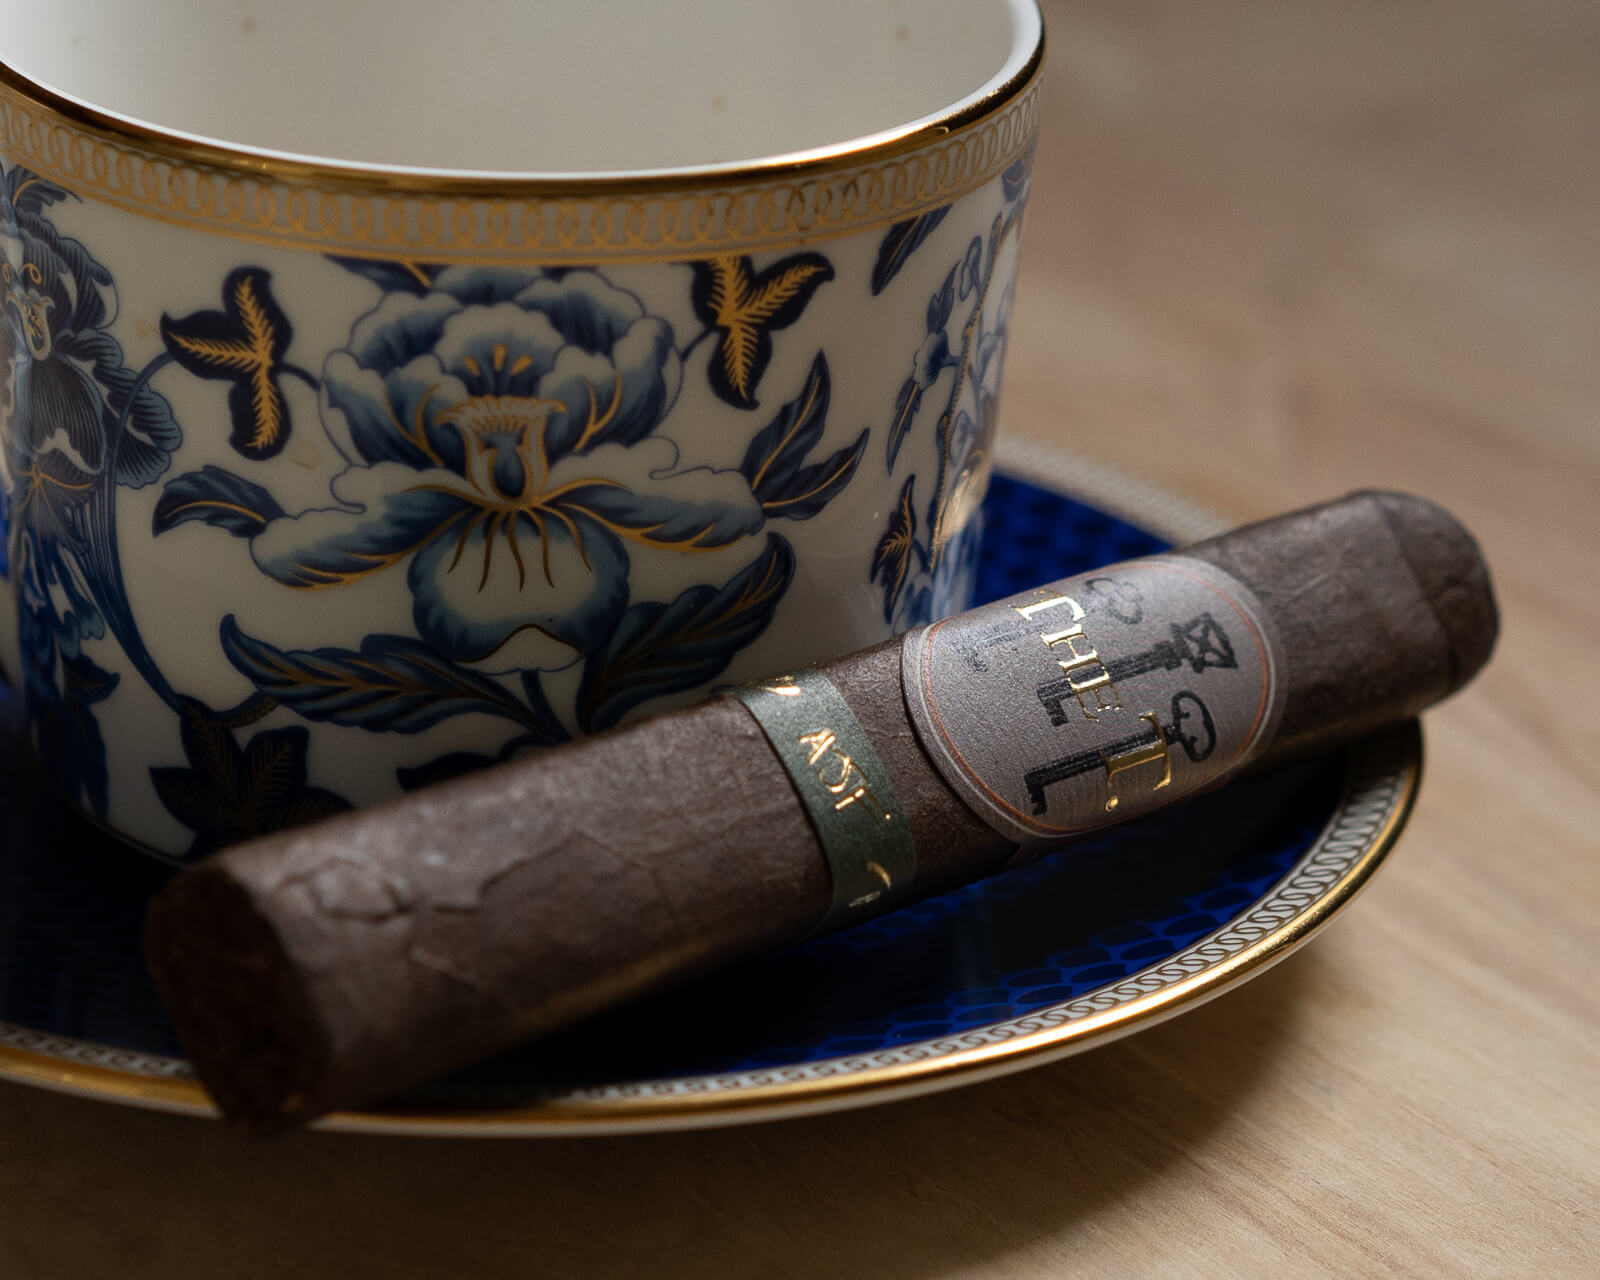 Caldwell The T Robusto Review